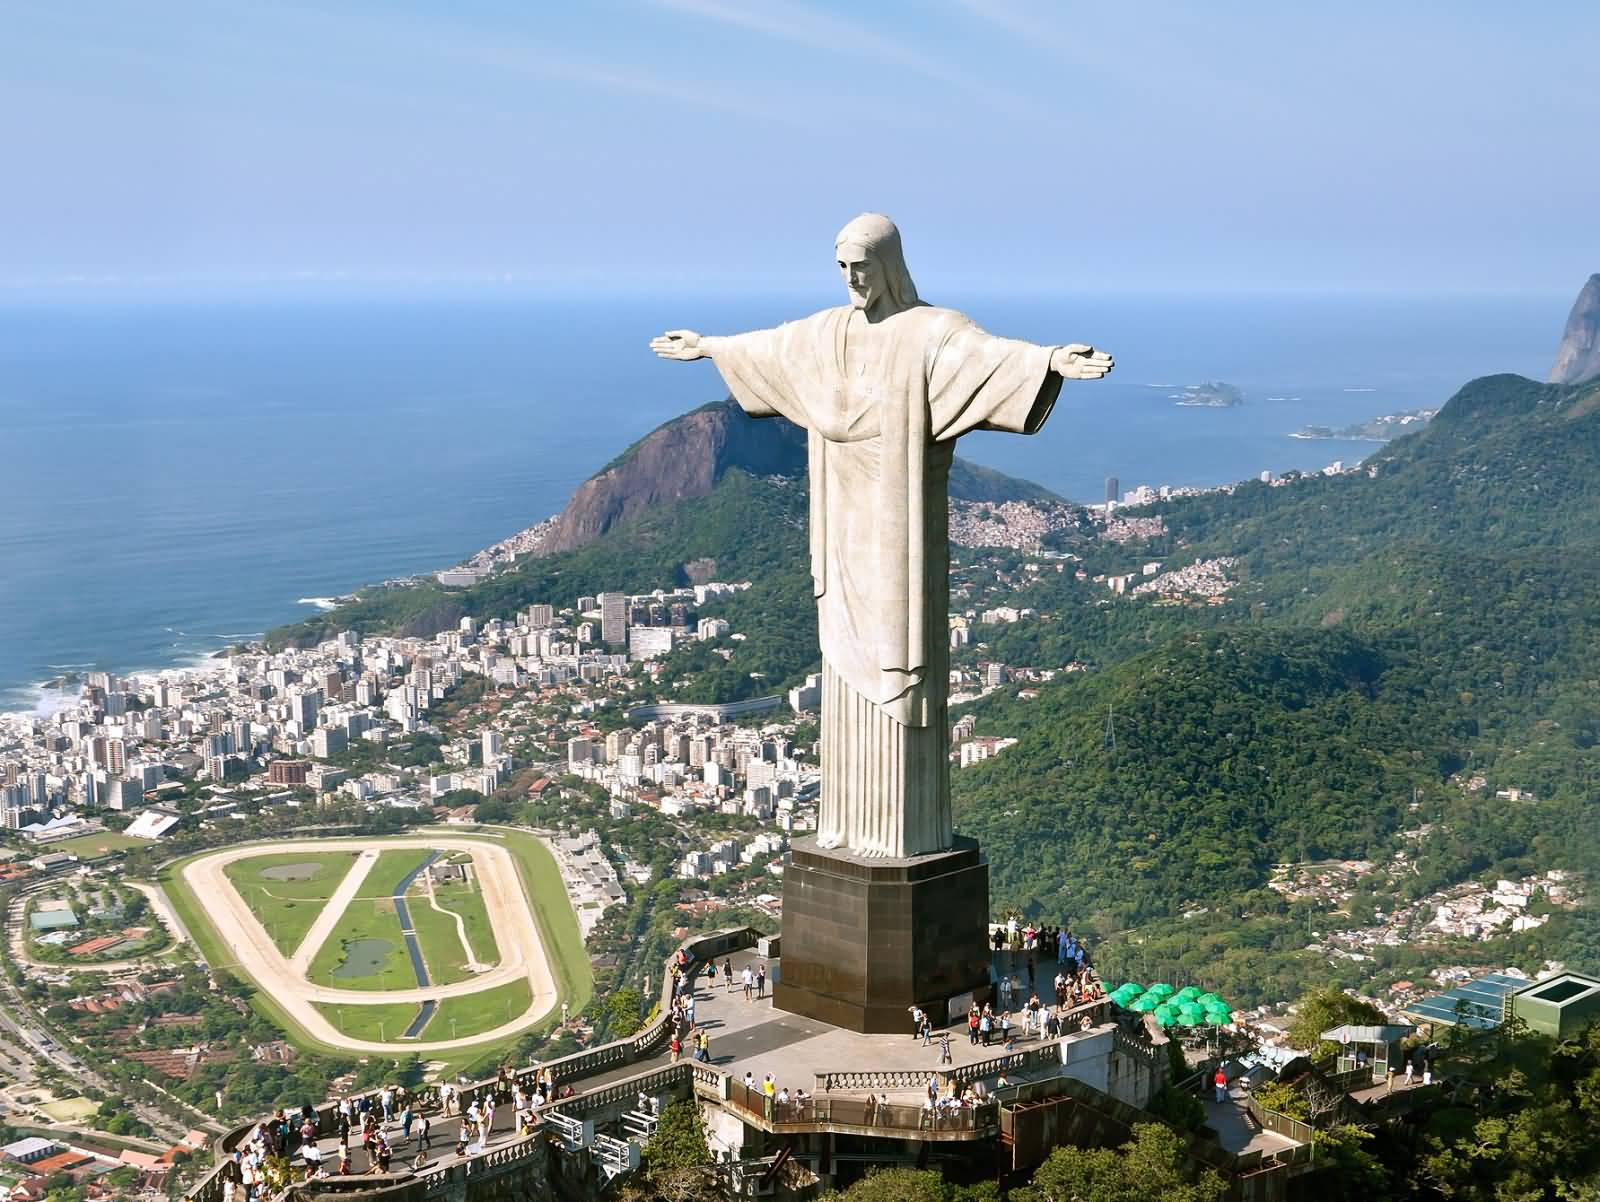 50 Most Incredible Pictures Of The Christ The Redeemer Statue In Brazil